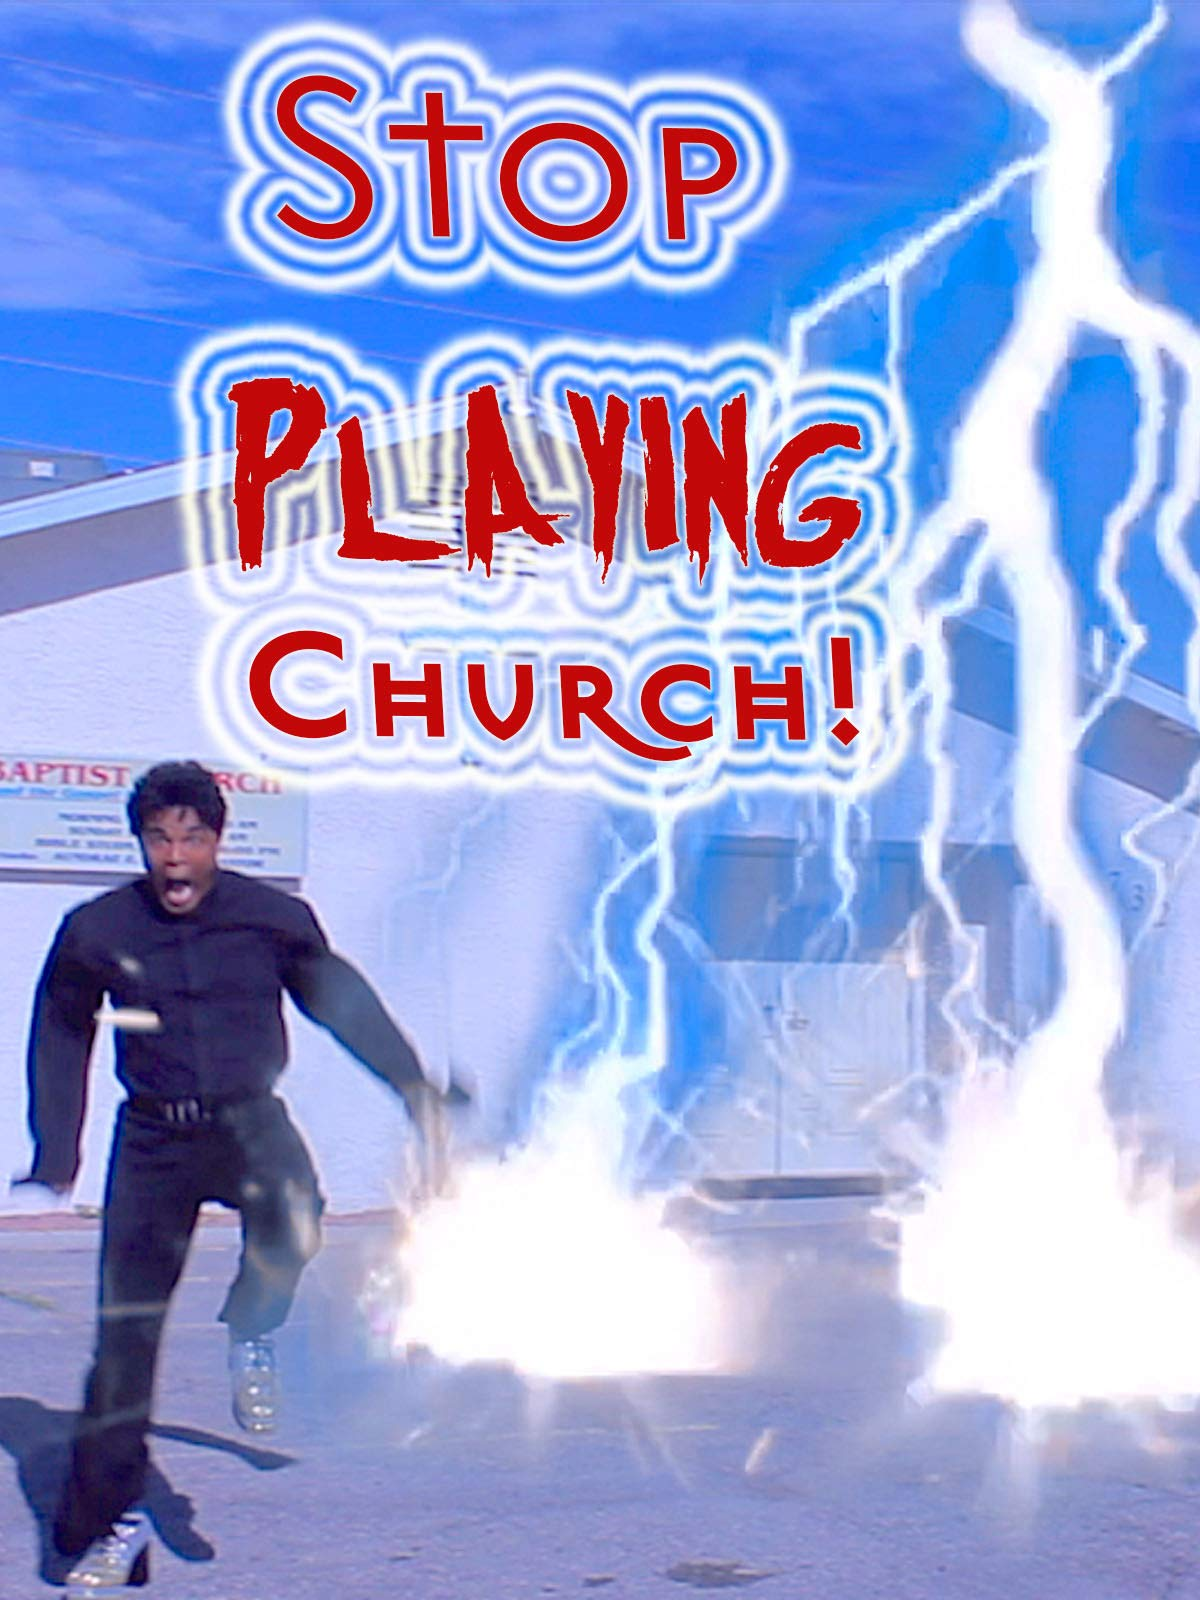 Stop Playing Church